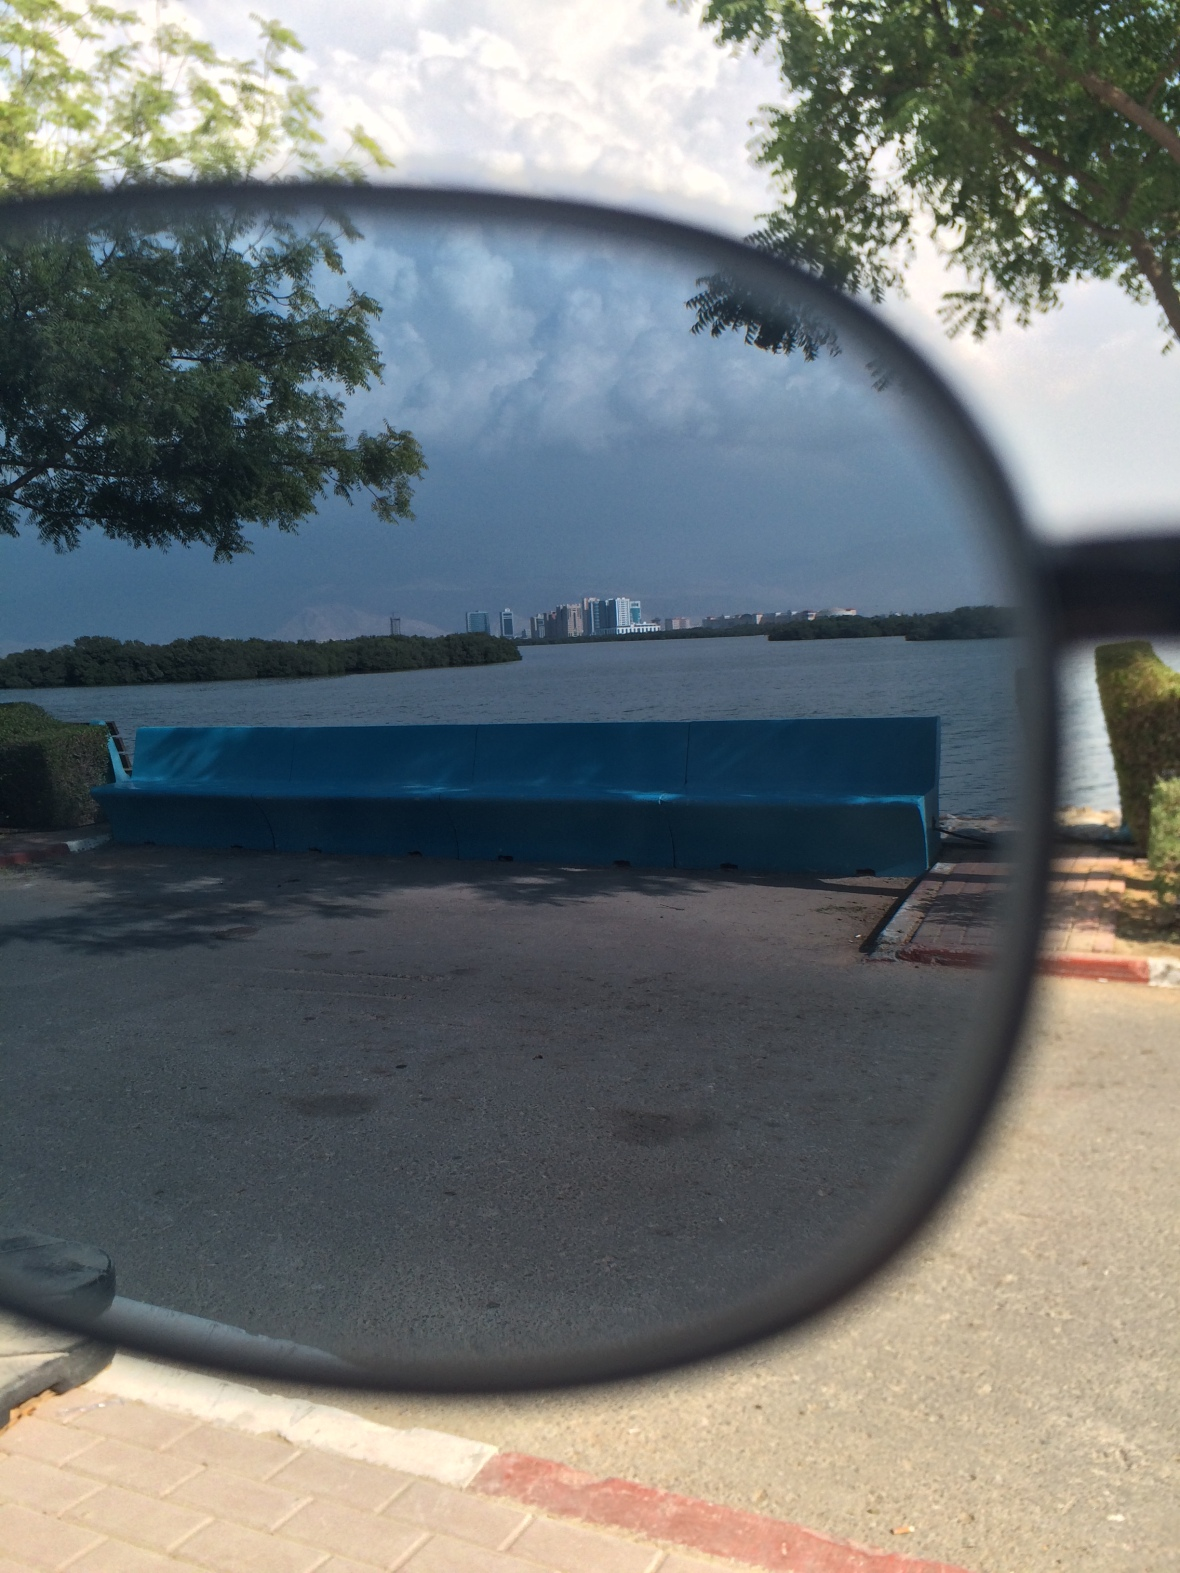 Corniche Through Sunglasses, Ras Al Khaimah, UAE